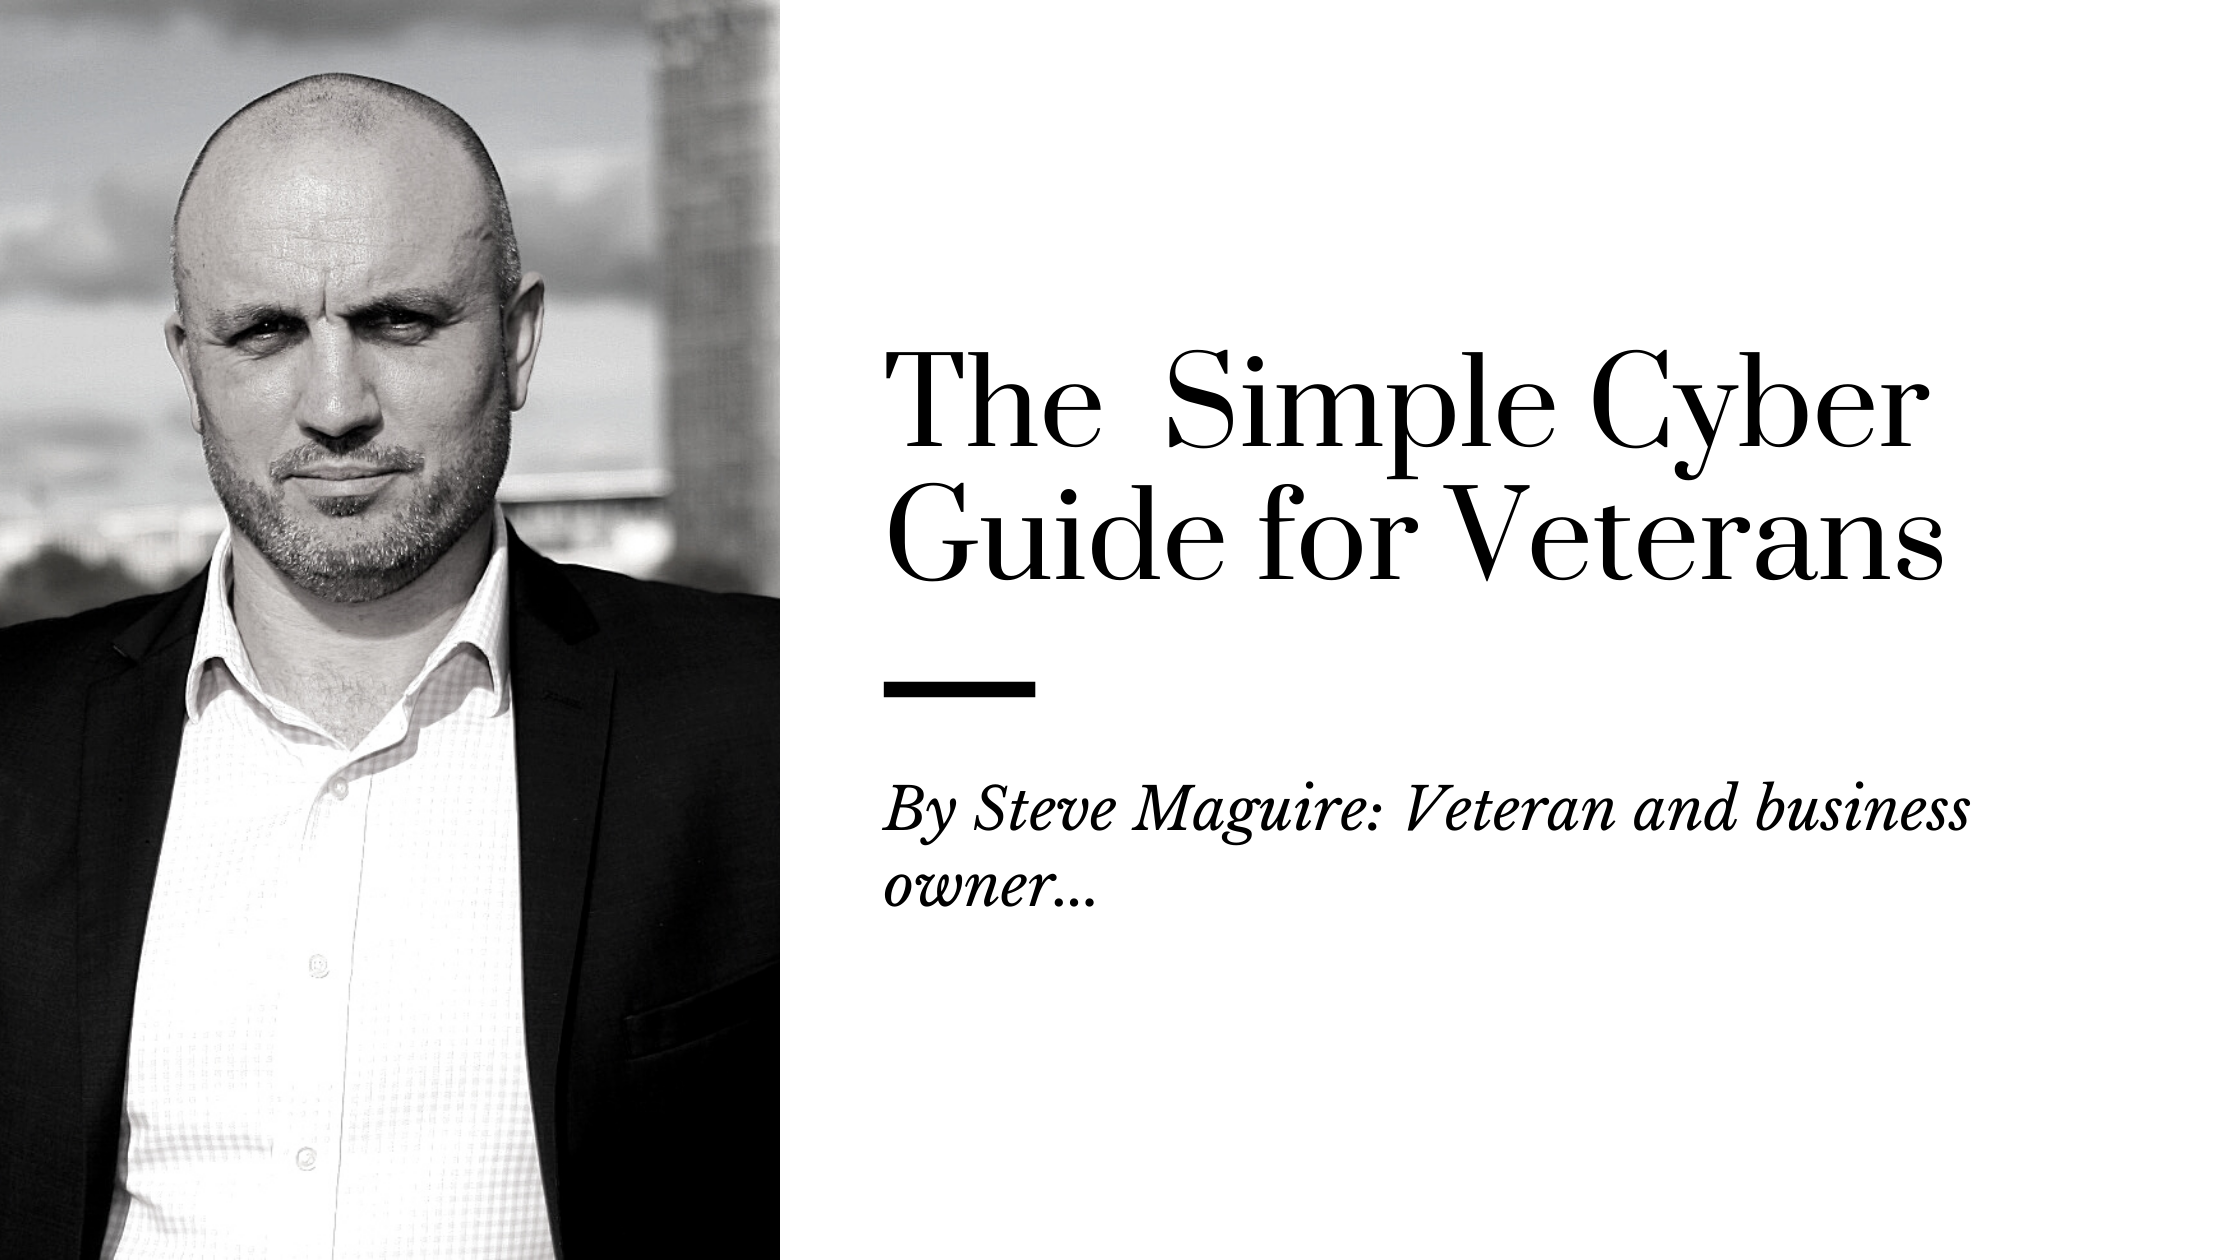 The Simple Cyber Guide for Veterans